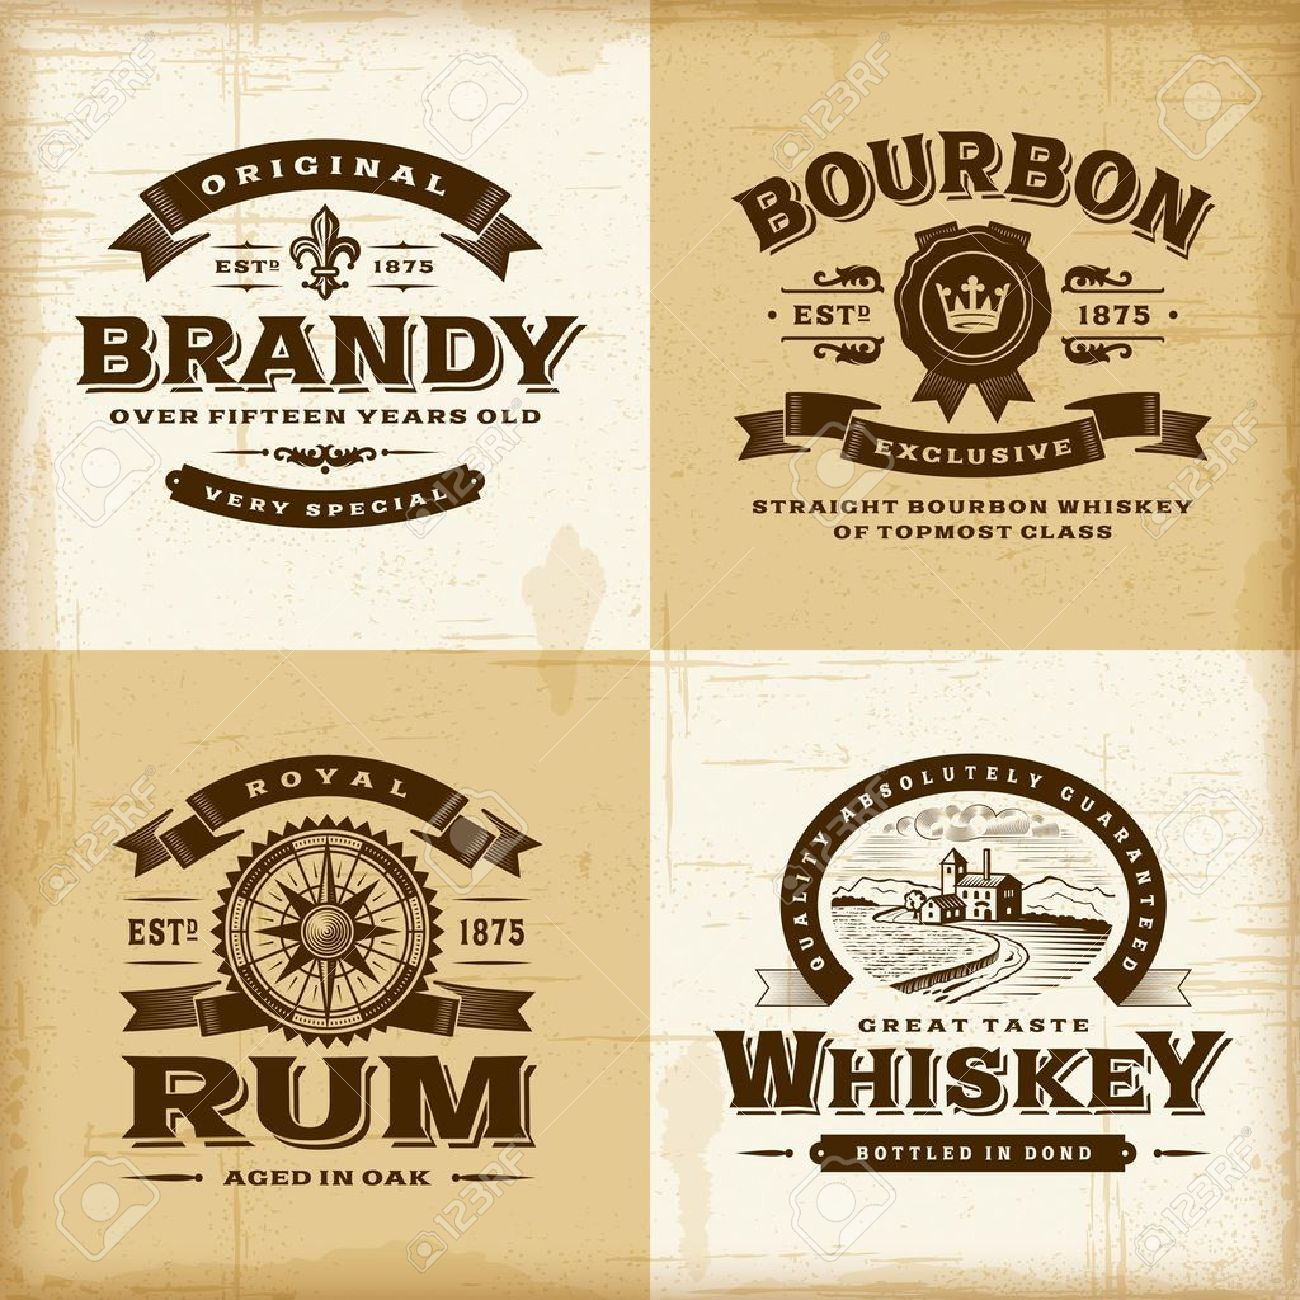 Pin By John Nestorson On Bourbon And Whiskey Vintage